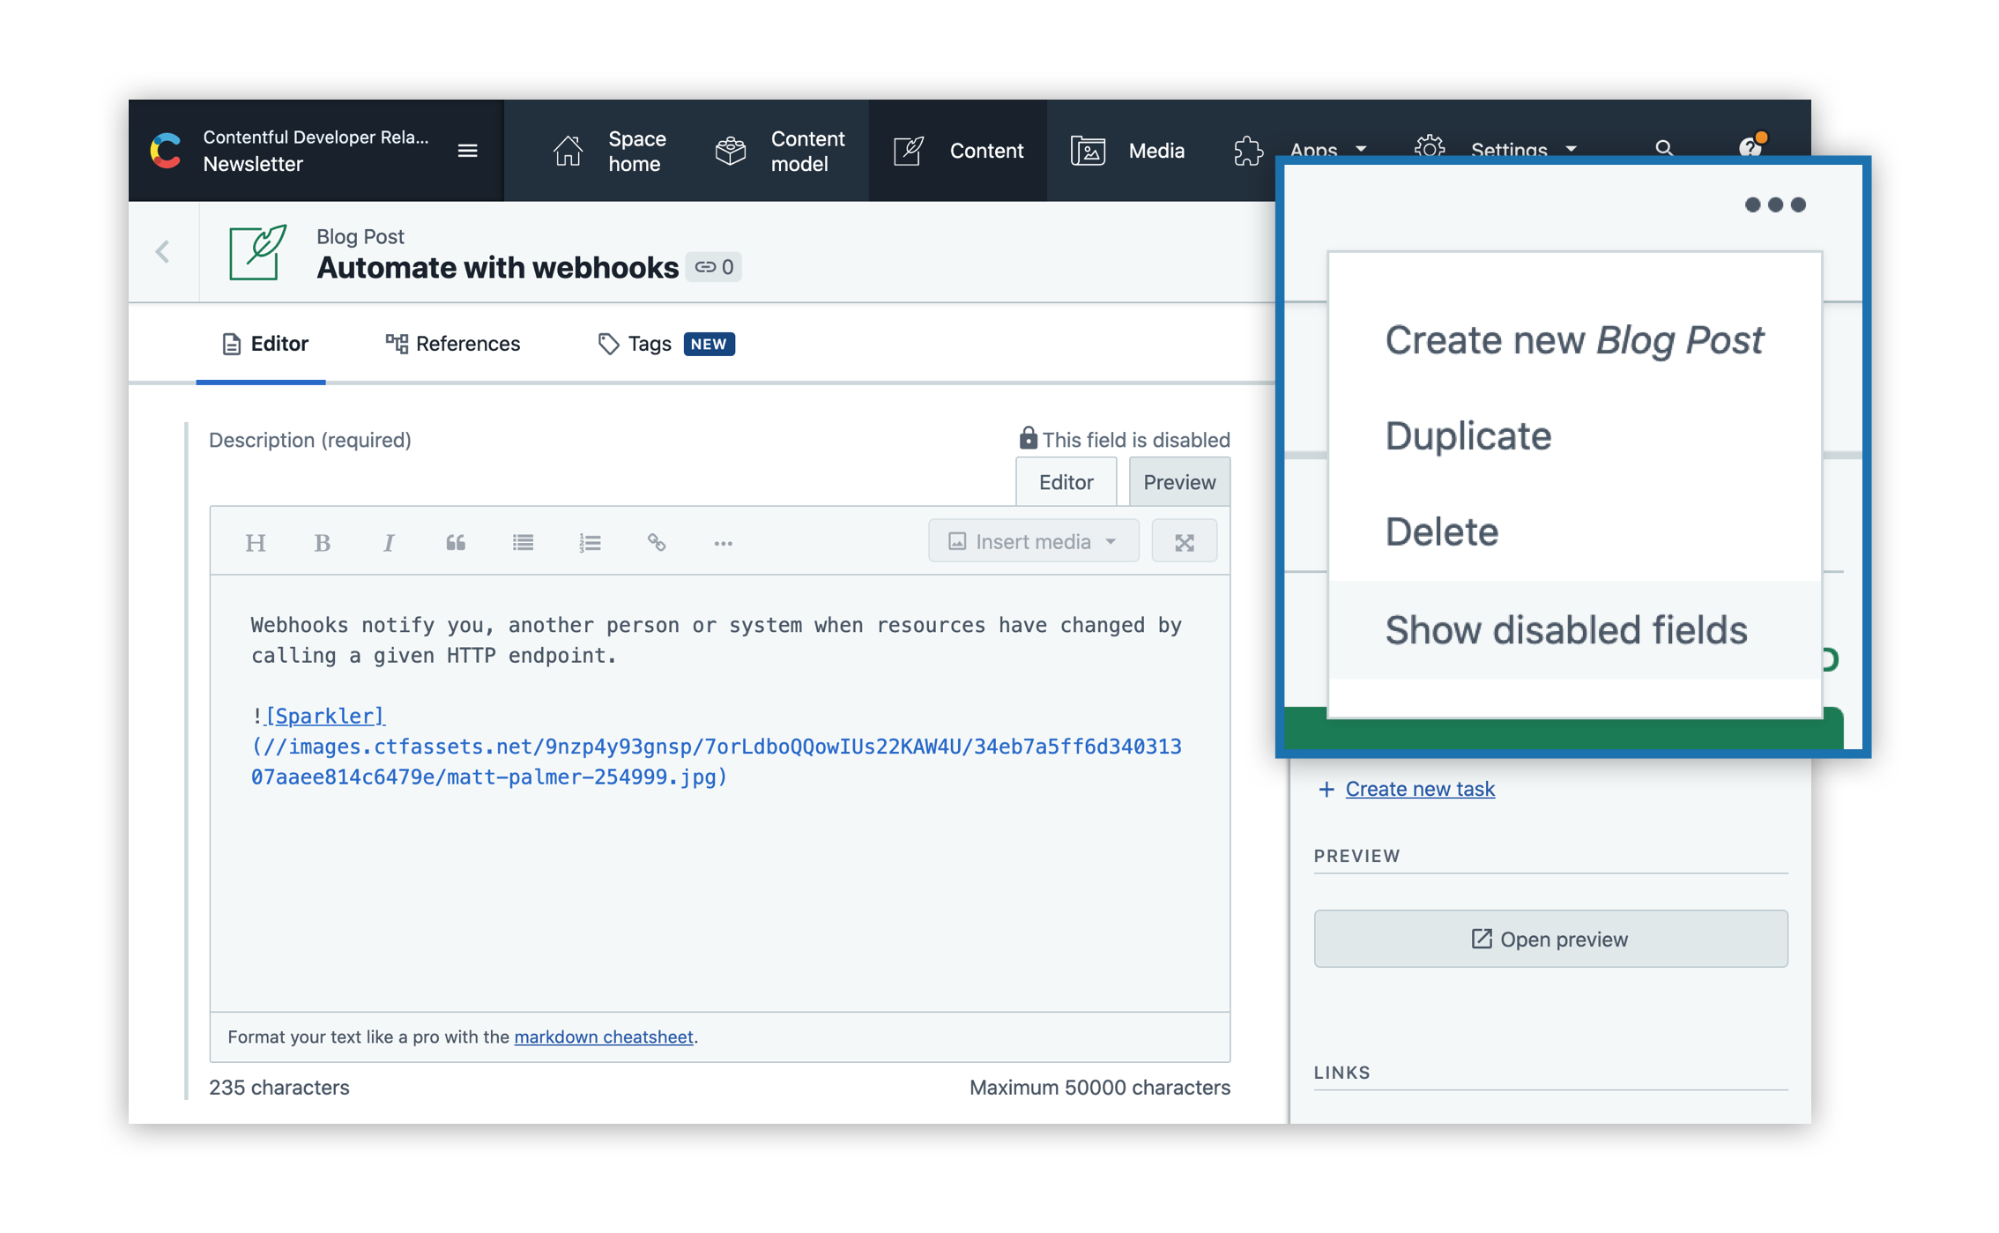 Scrrenshot of Contentful web app showing how to show disabled fields